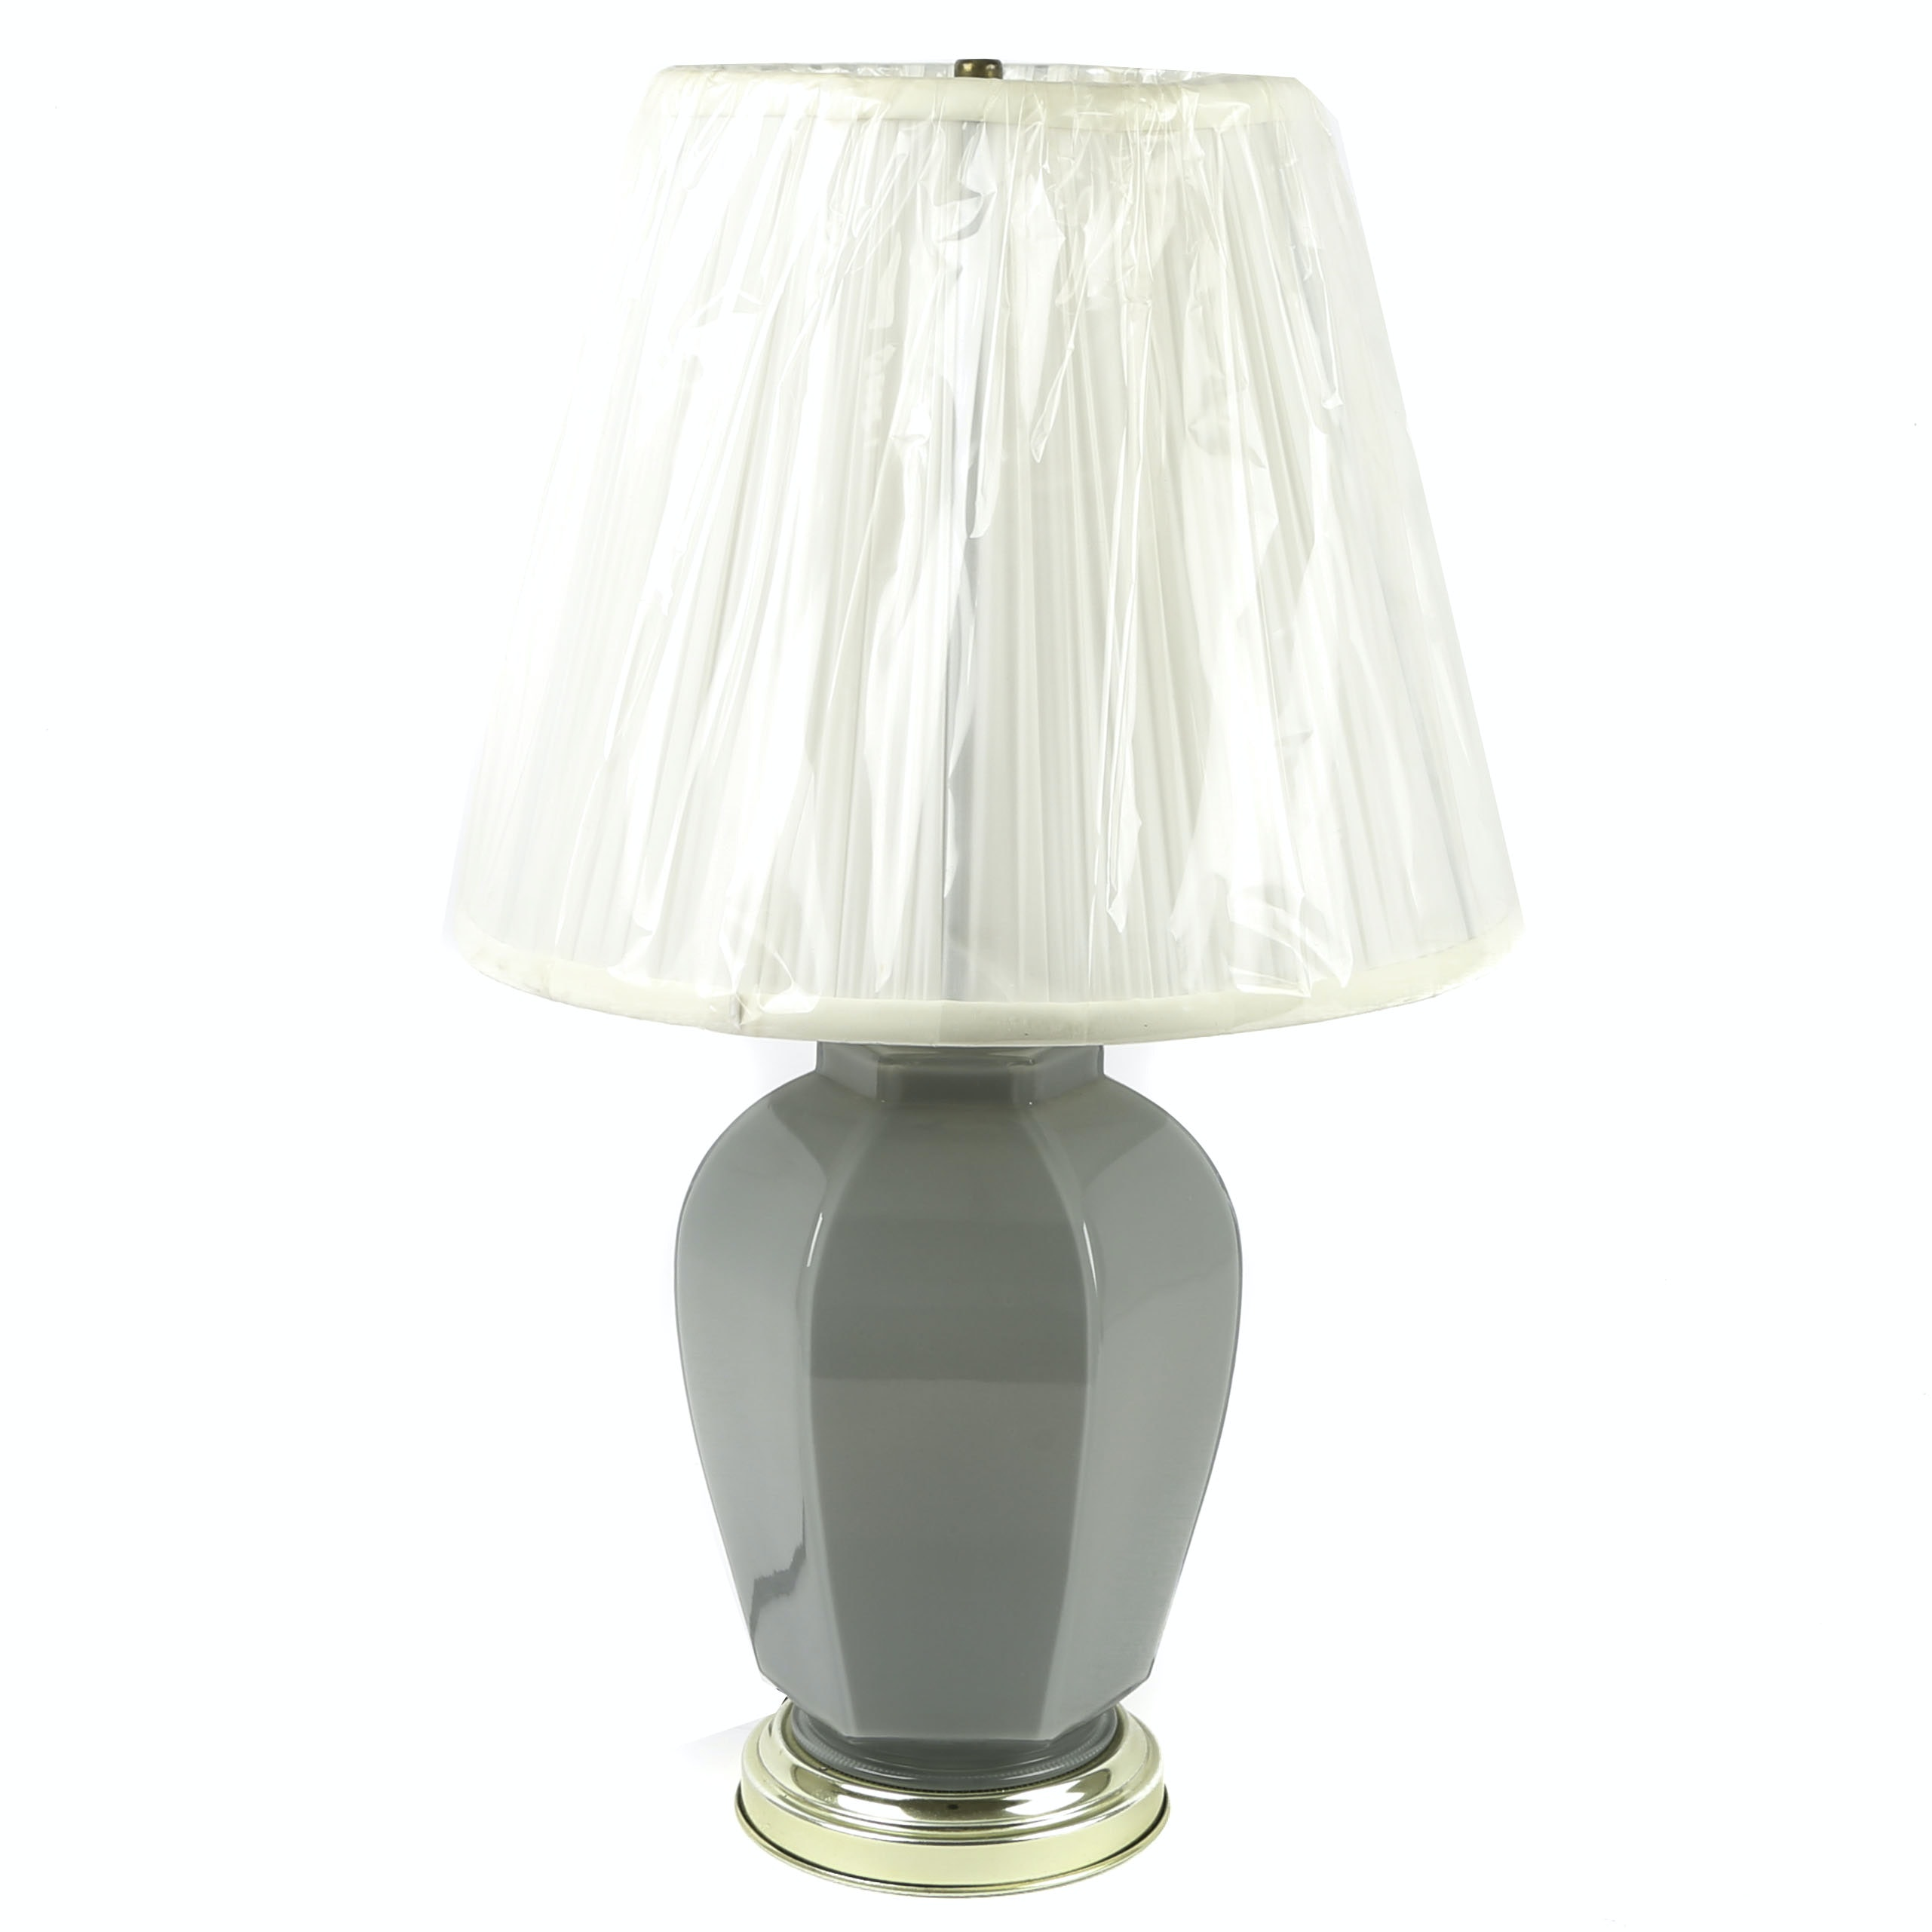 Hexagonal Baluster Ceramic Table Lamp with Shade